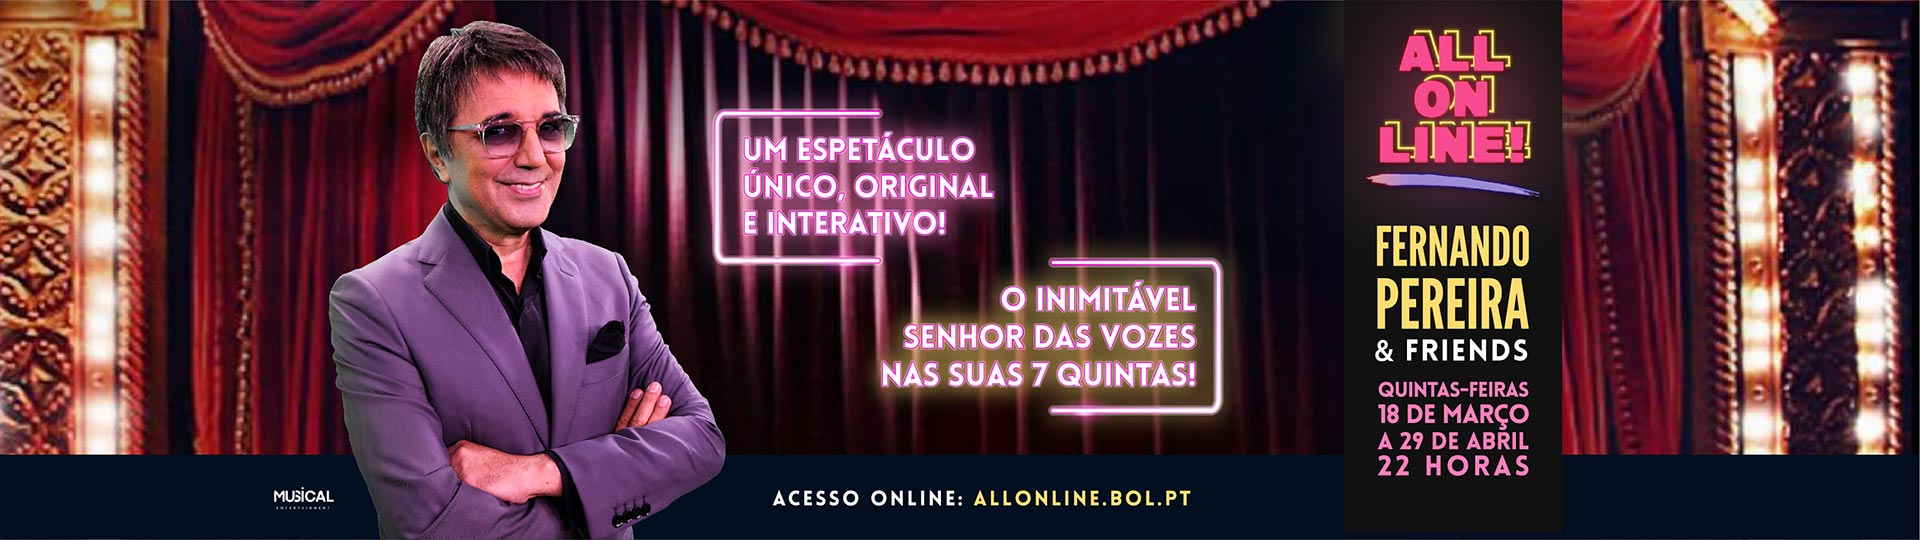 ALL ON LINE - FERNANDO PEREIRA